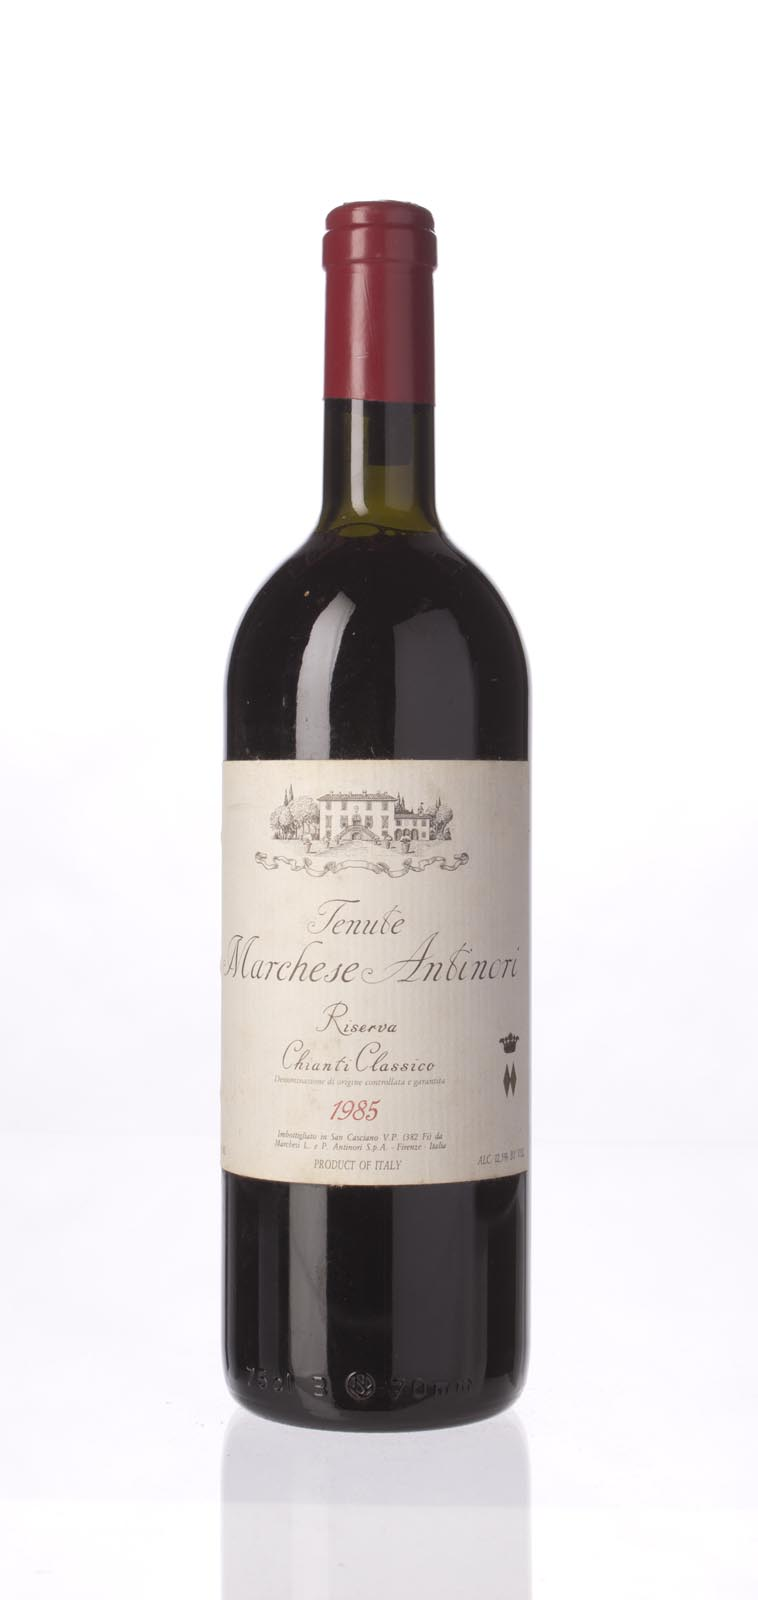 Antinori Chianti Classico Riserva Tenute Marchese Antinori 1985,  () from The BPW - Merchants of rare and fine wines.